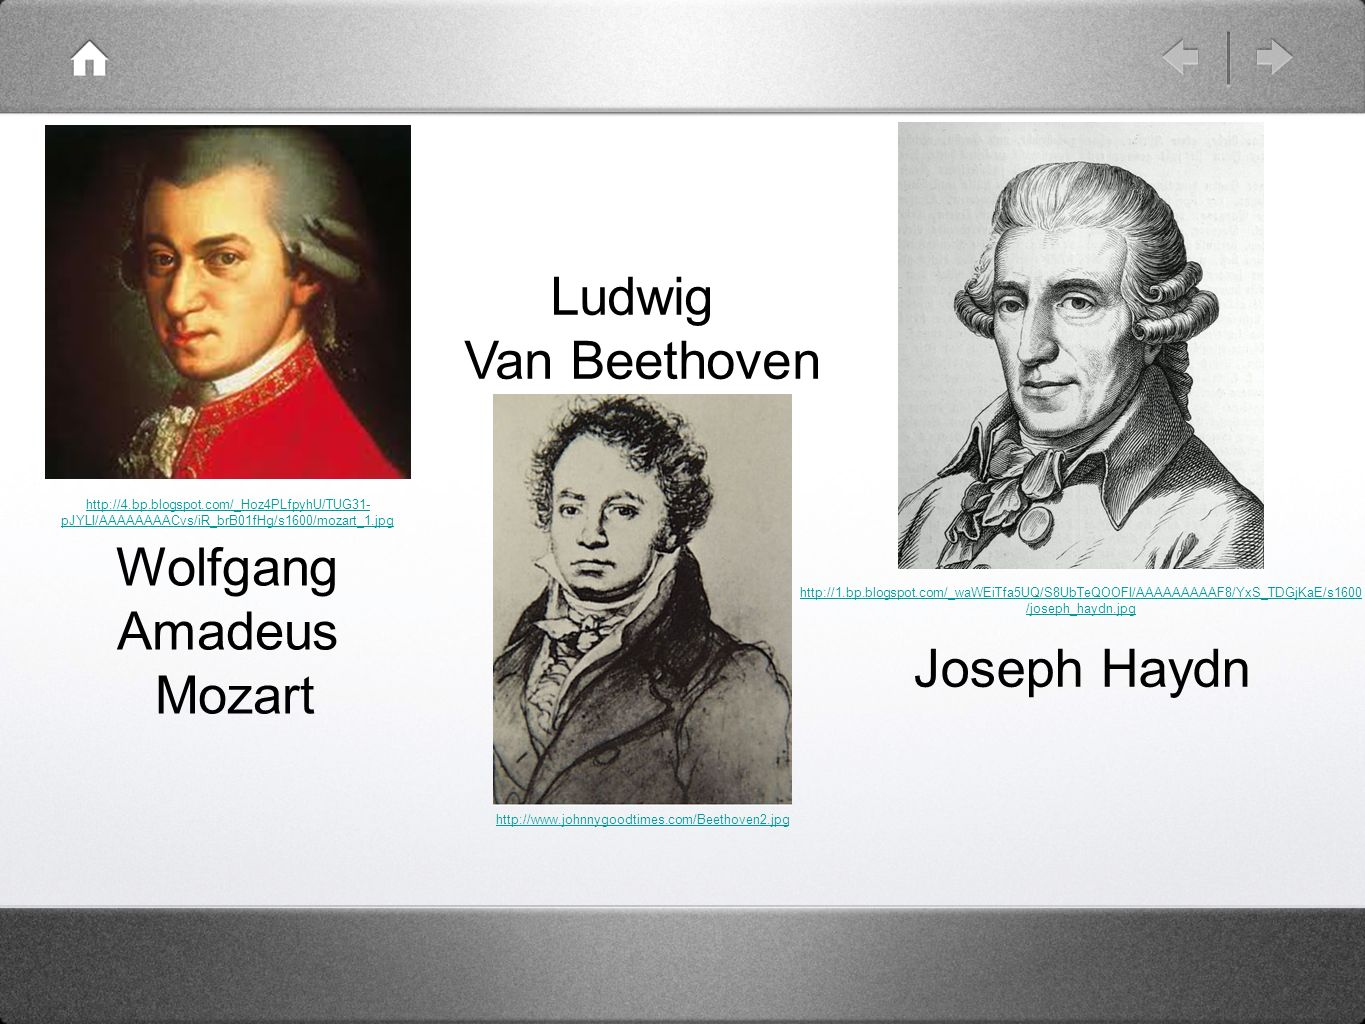 a comparison of music work of ludwig van beethoven and wolfgang amadeus mozart Comparisons between the musical styles of beethoven's fifth symphony and mozart's symphony 40  wolfgang amadeus mozart  ludwig van beethoven music.